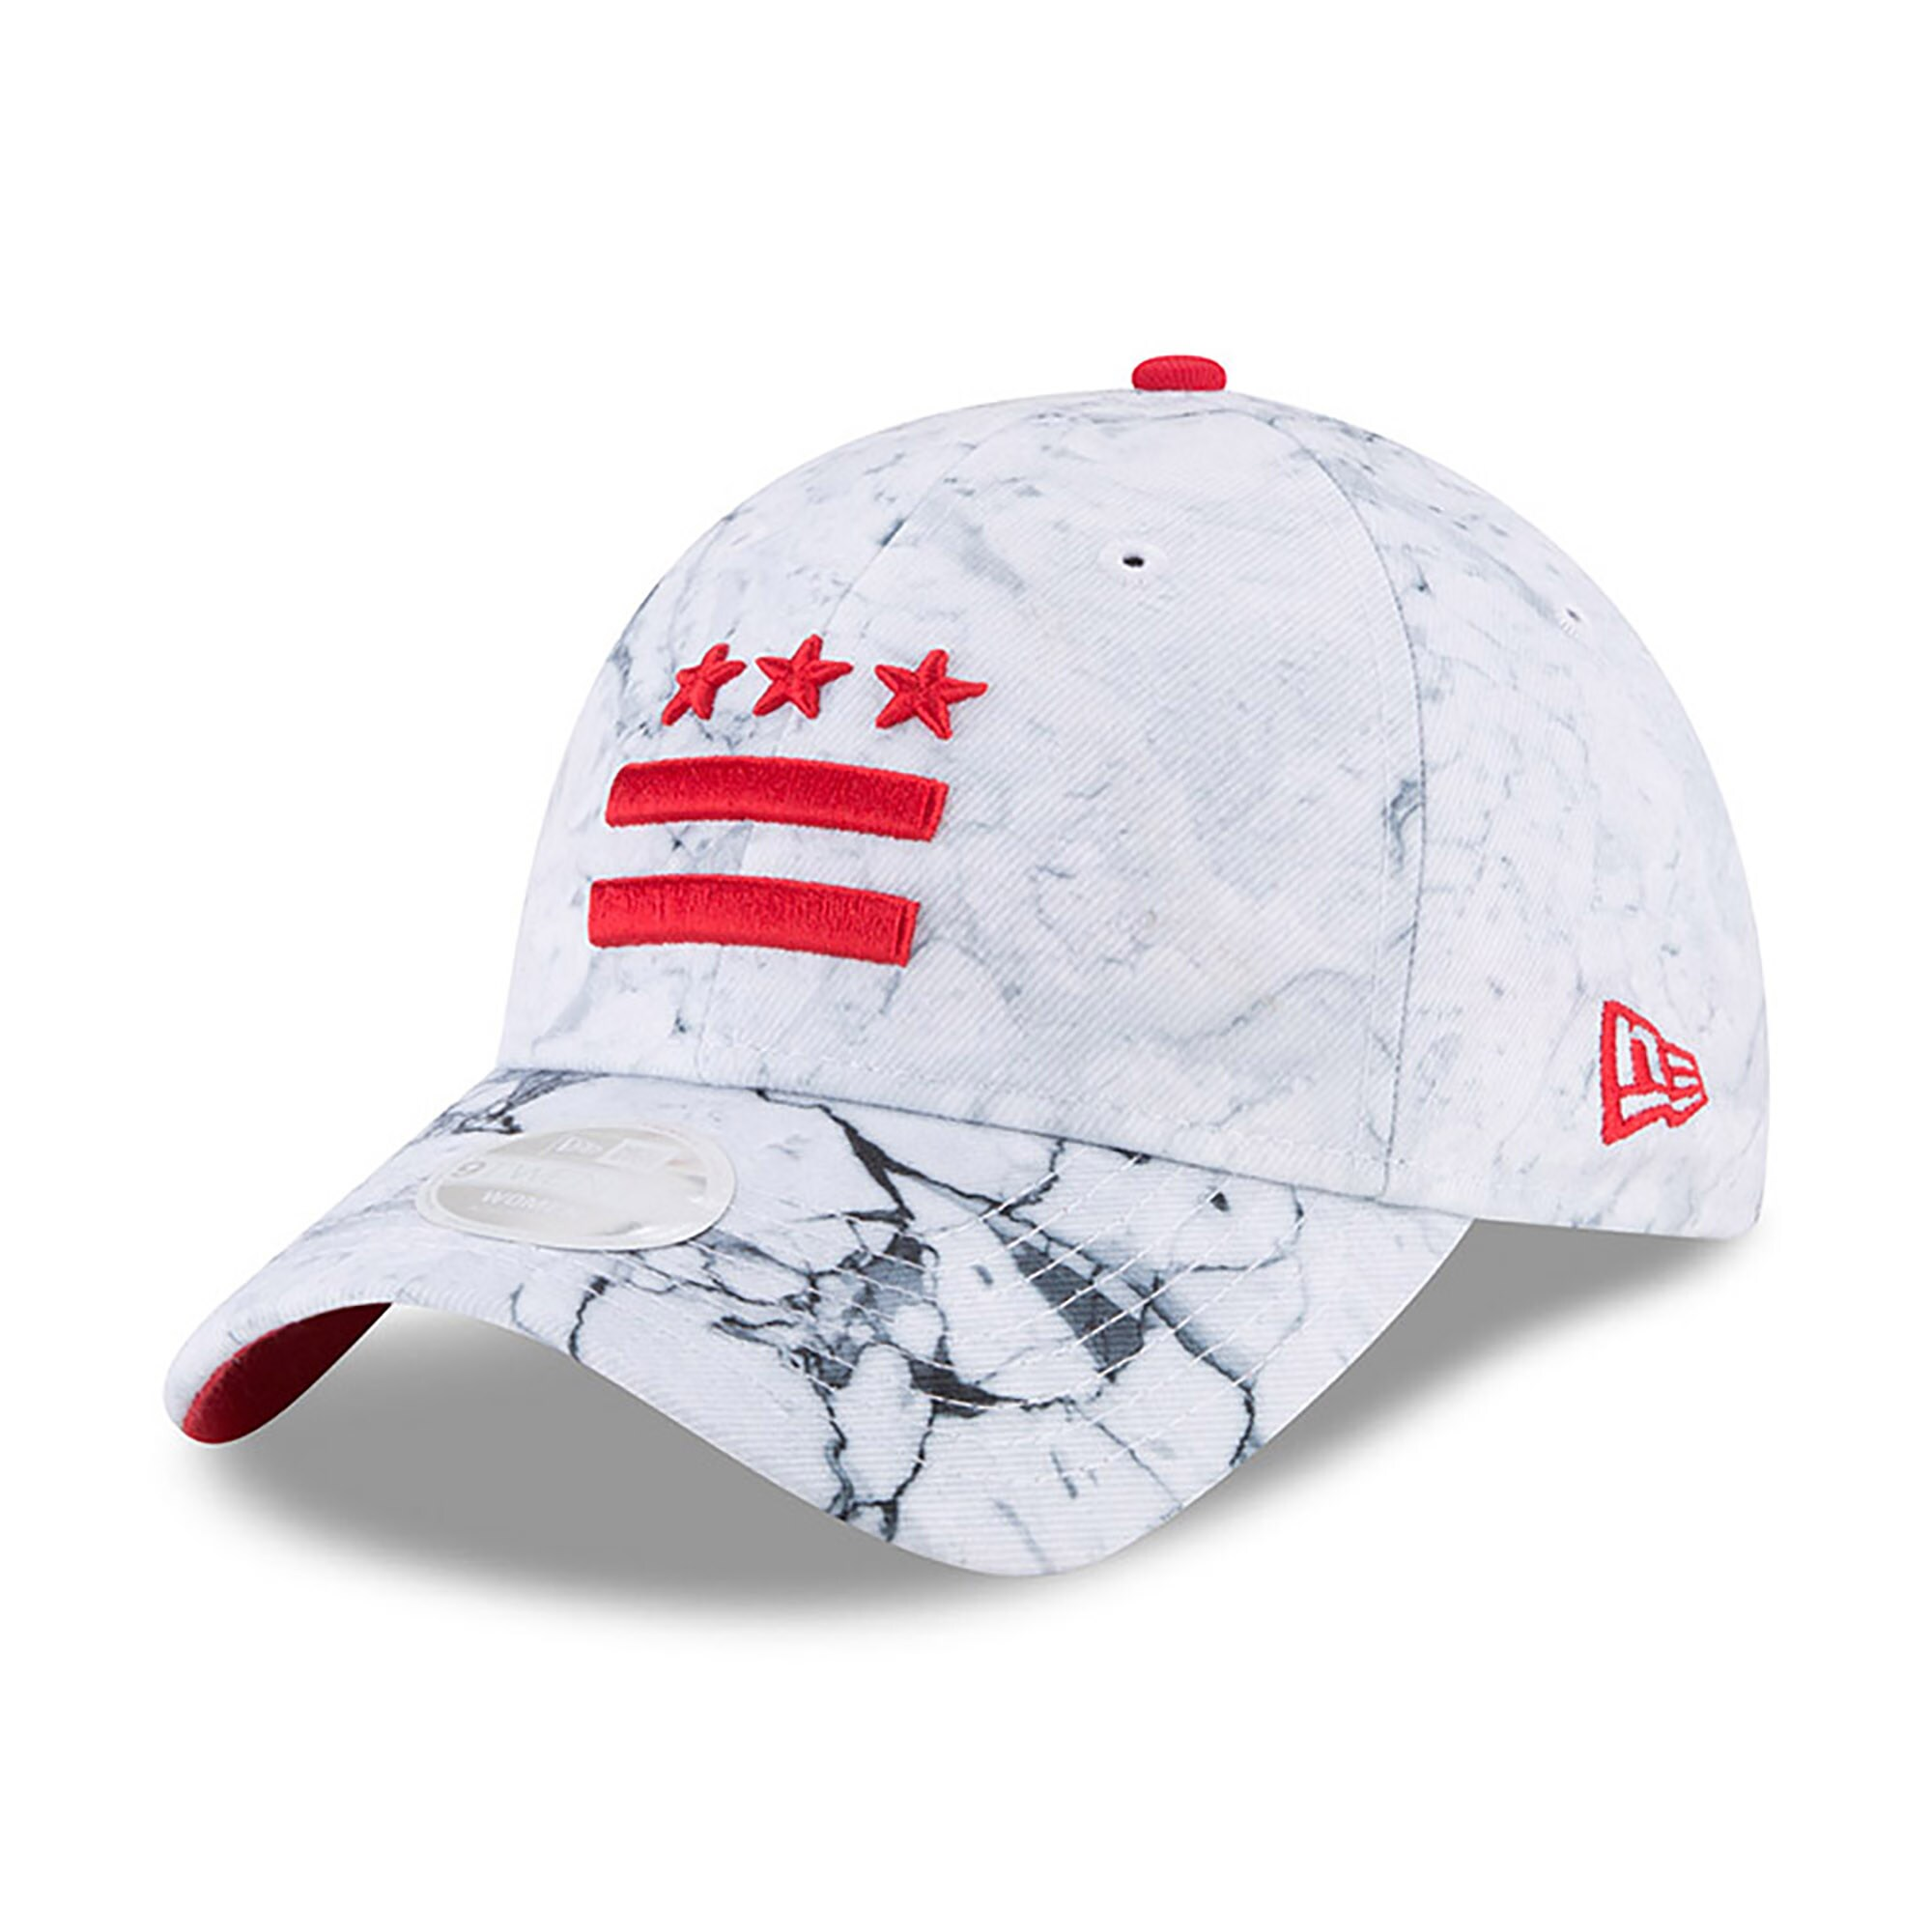 Washington Wizards New Era Women's NBA City Series 9TWENTY Adjustable Hat - White